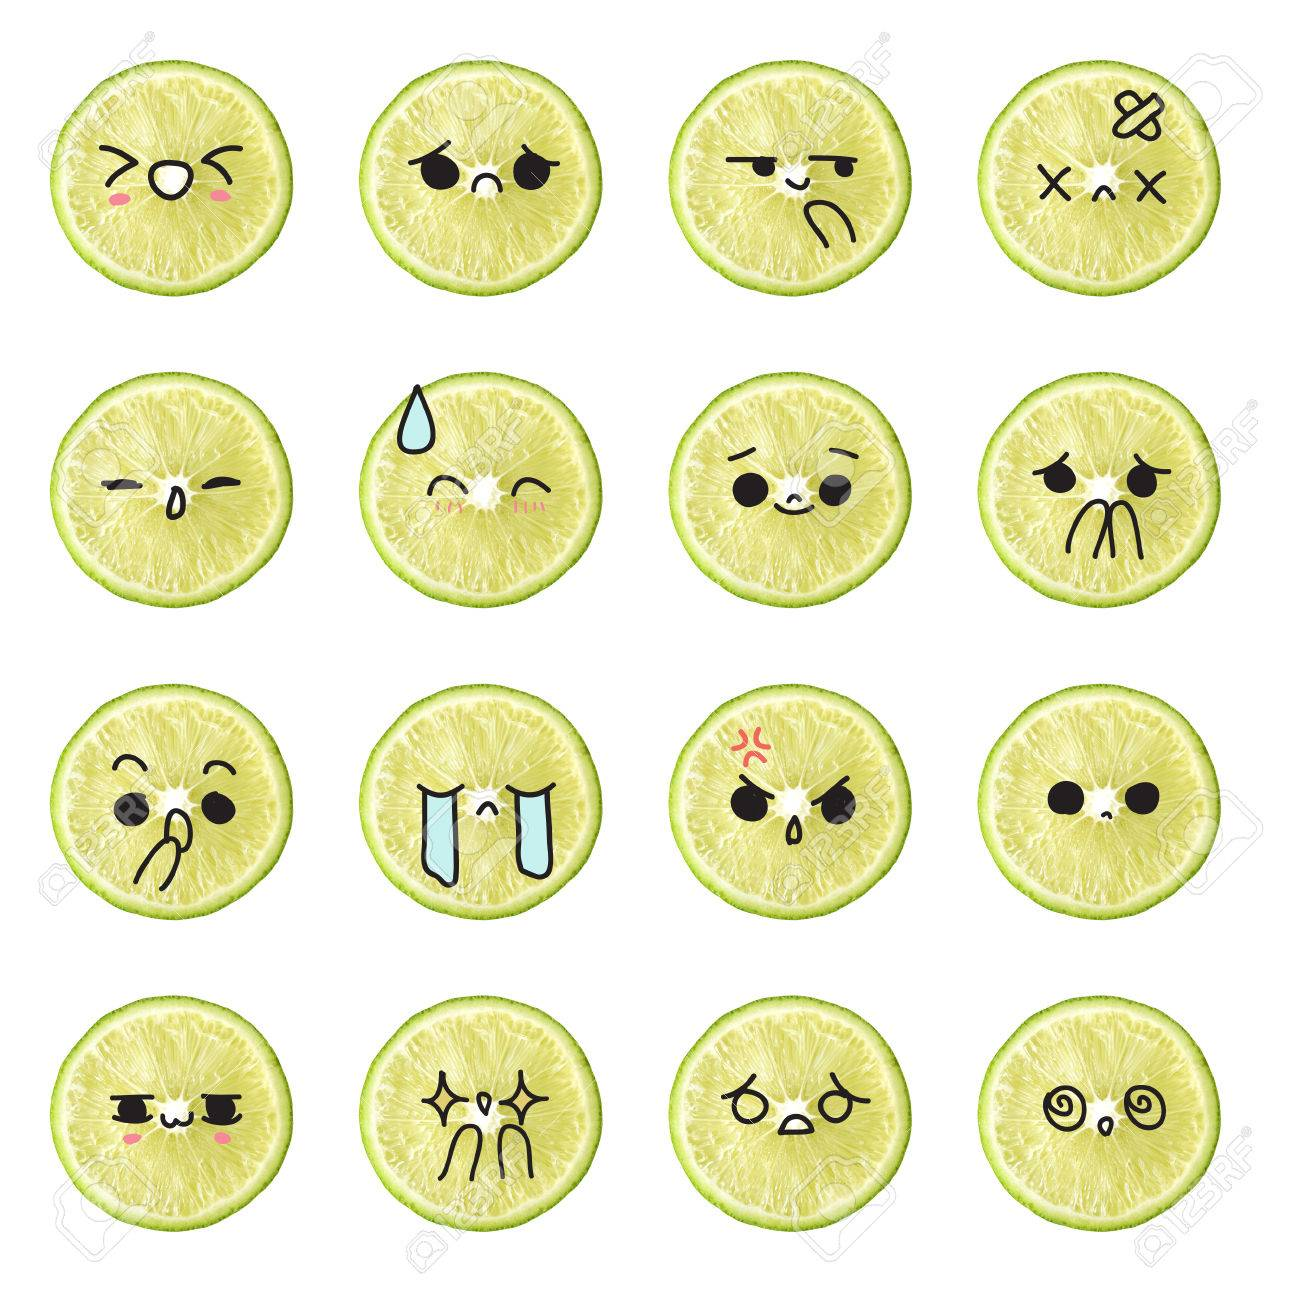 Lemon Emoticon Face Action Cartoon Cute To Draw The Line Stock